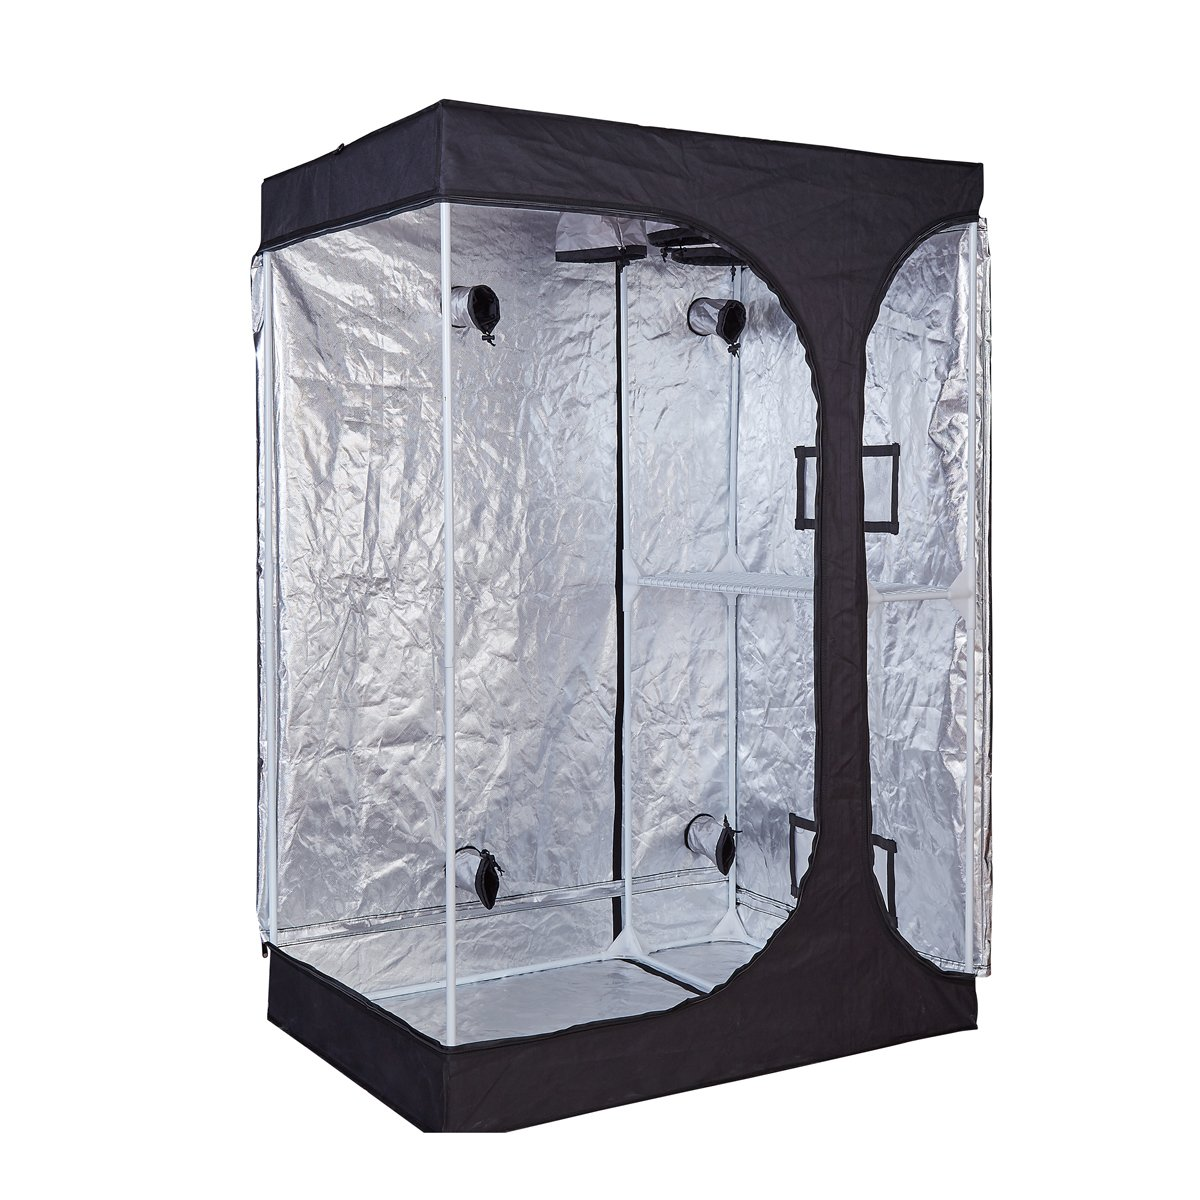 TopoGrow 2-in-1 Indoor Grow Tent 48''x36''x72''600D High-Reflective W/2-Tiered for Lodge Propagation and Flower (48''x36''x72'') by TopoGrow (Image #3)